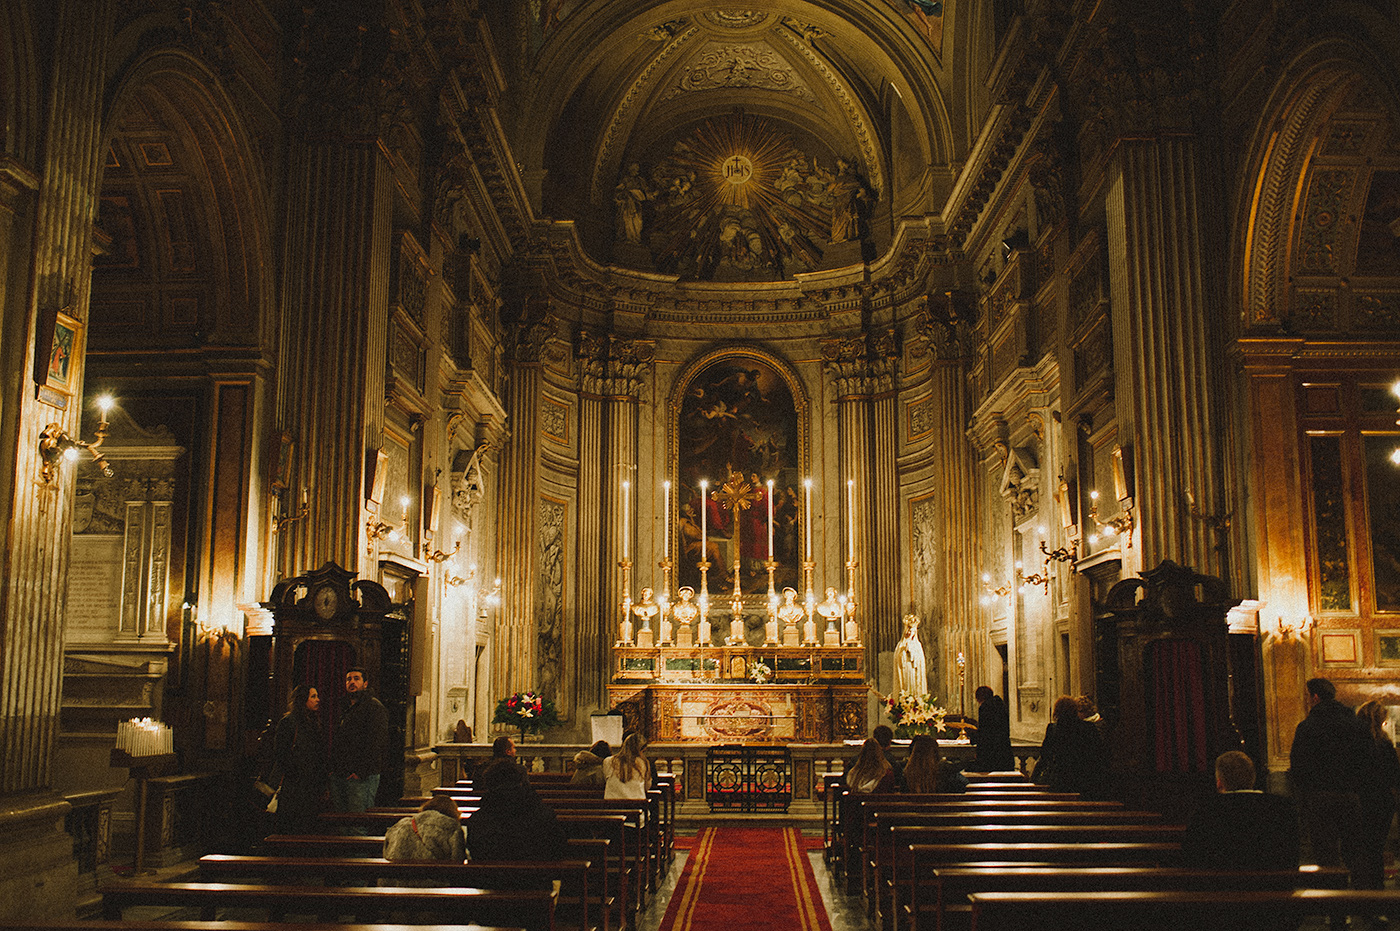 The church of Sant'Agnese in Agone in the Piazza Navona.